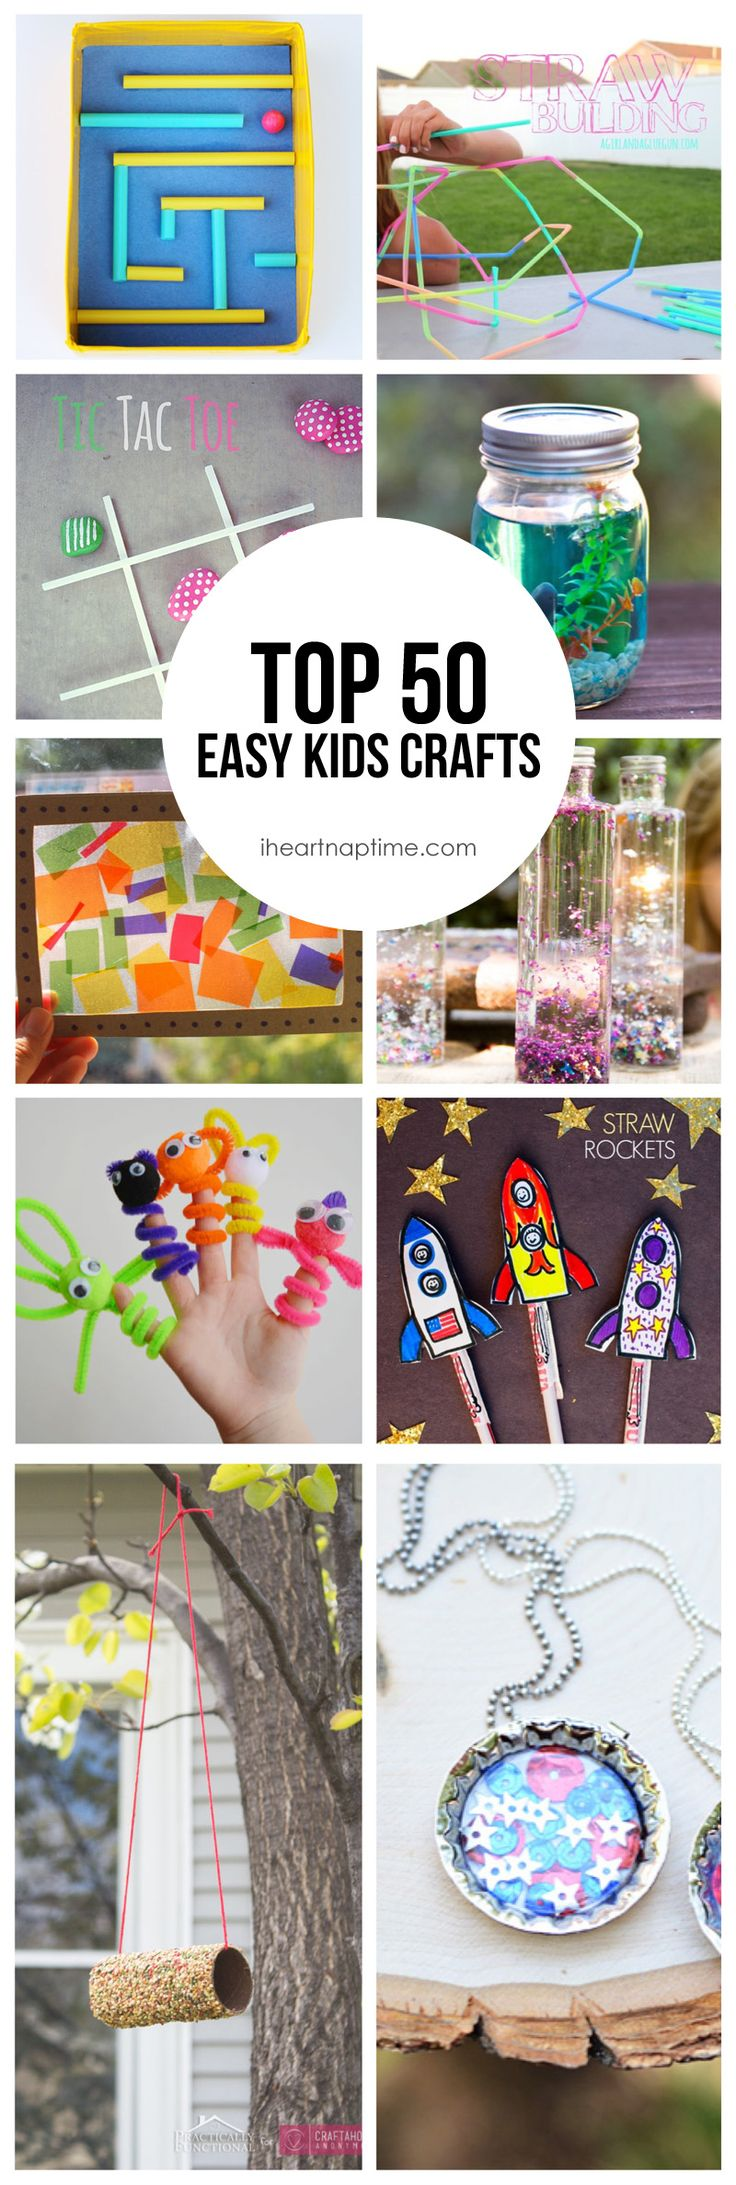 50 fun easy kids crafts - Pictures Of Crafts For Kids